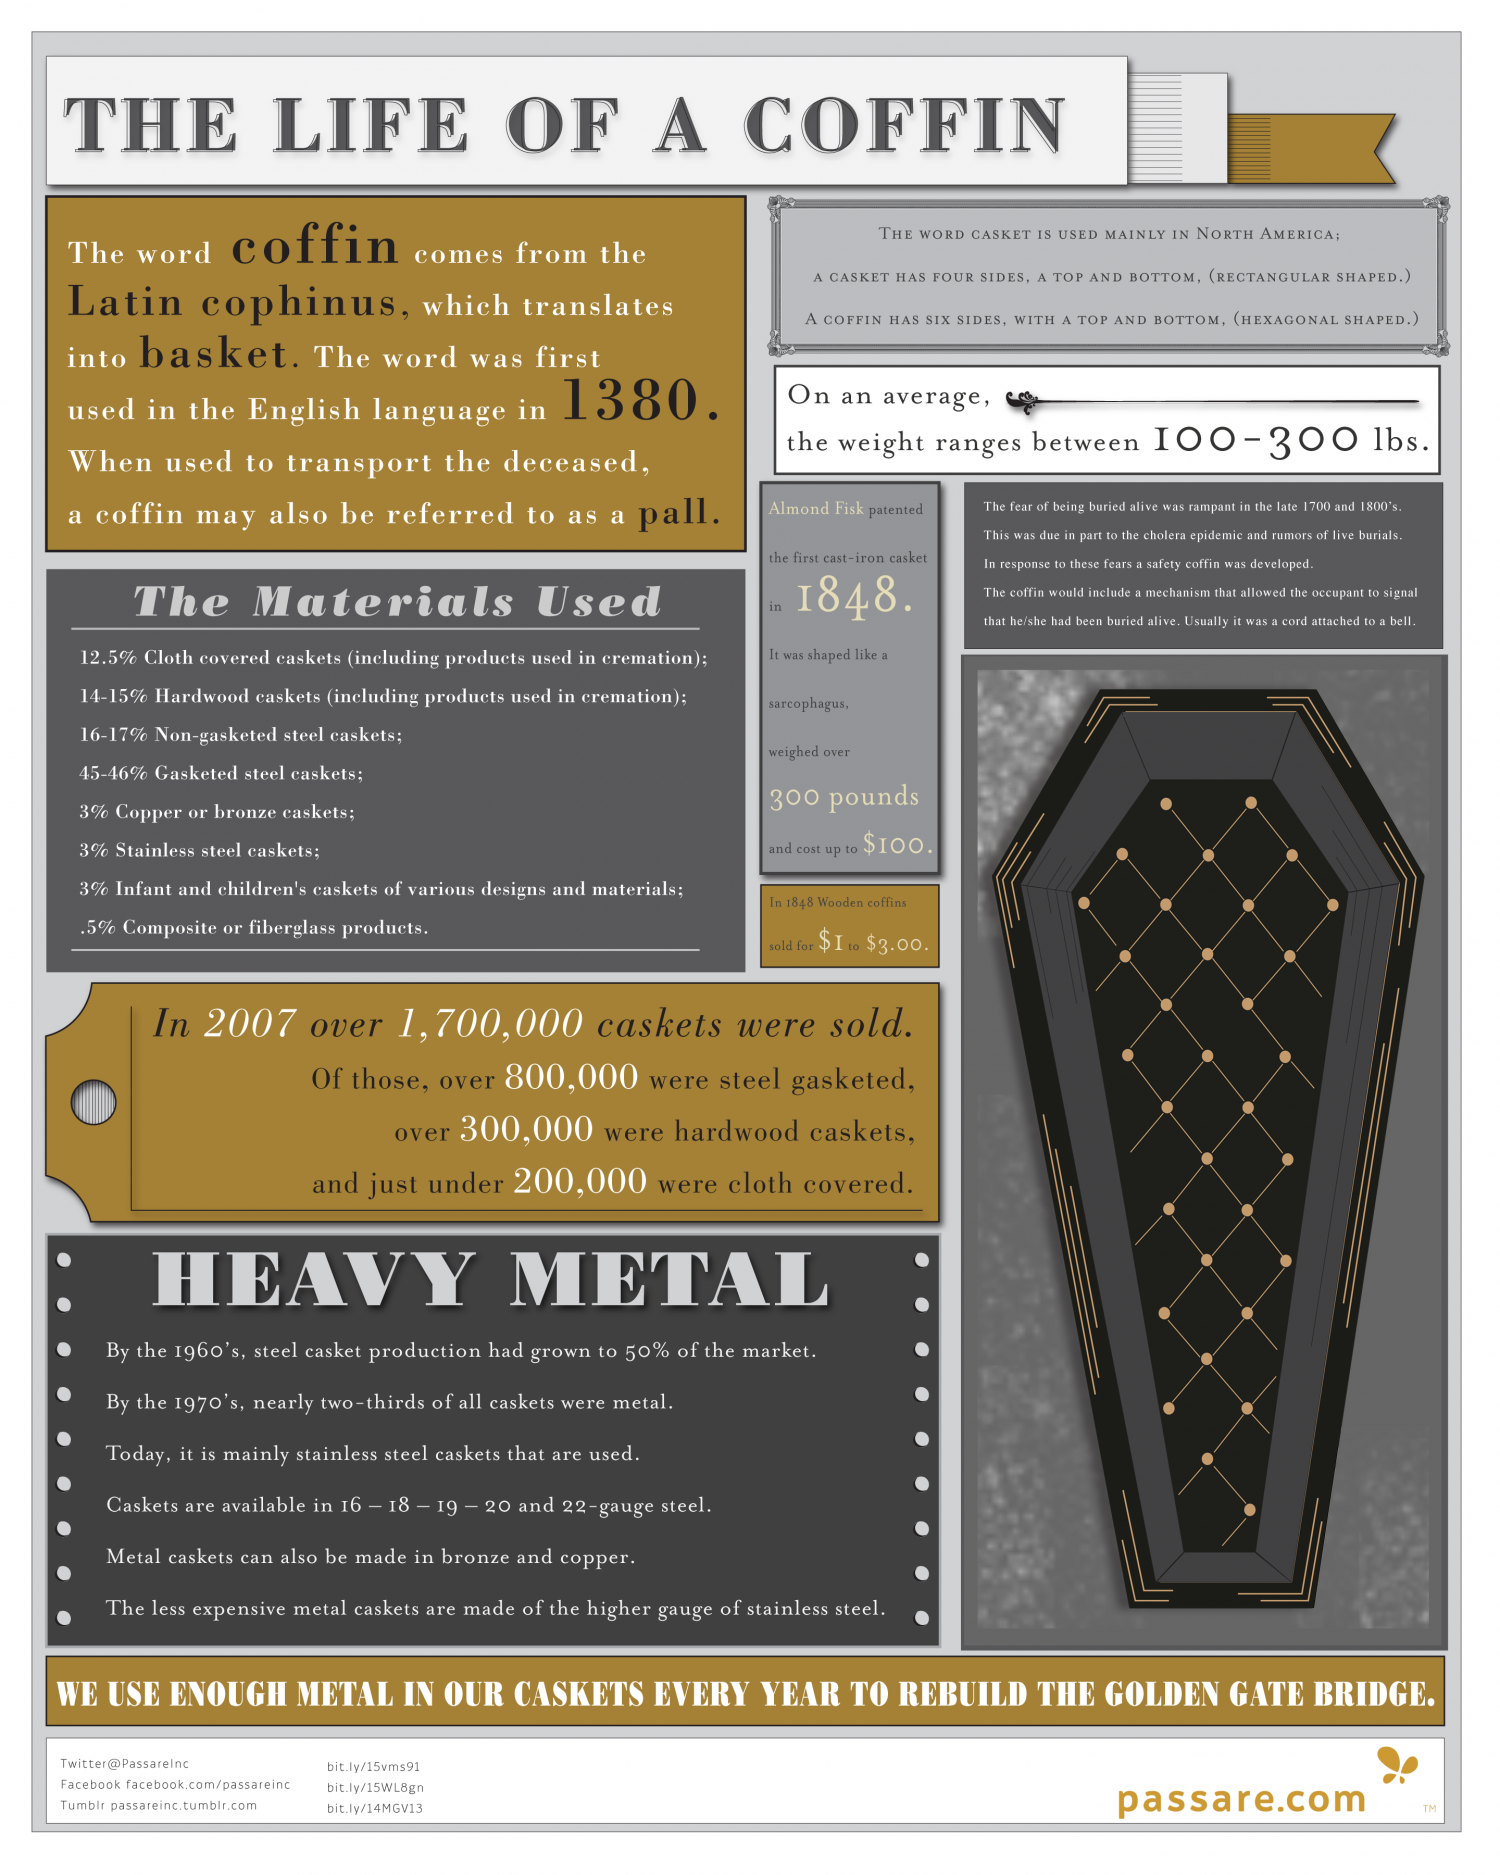 The Life of a Coffin Infographic